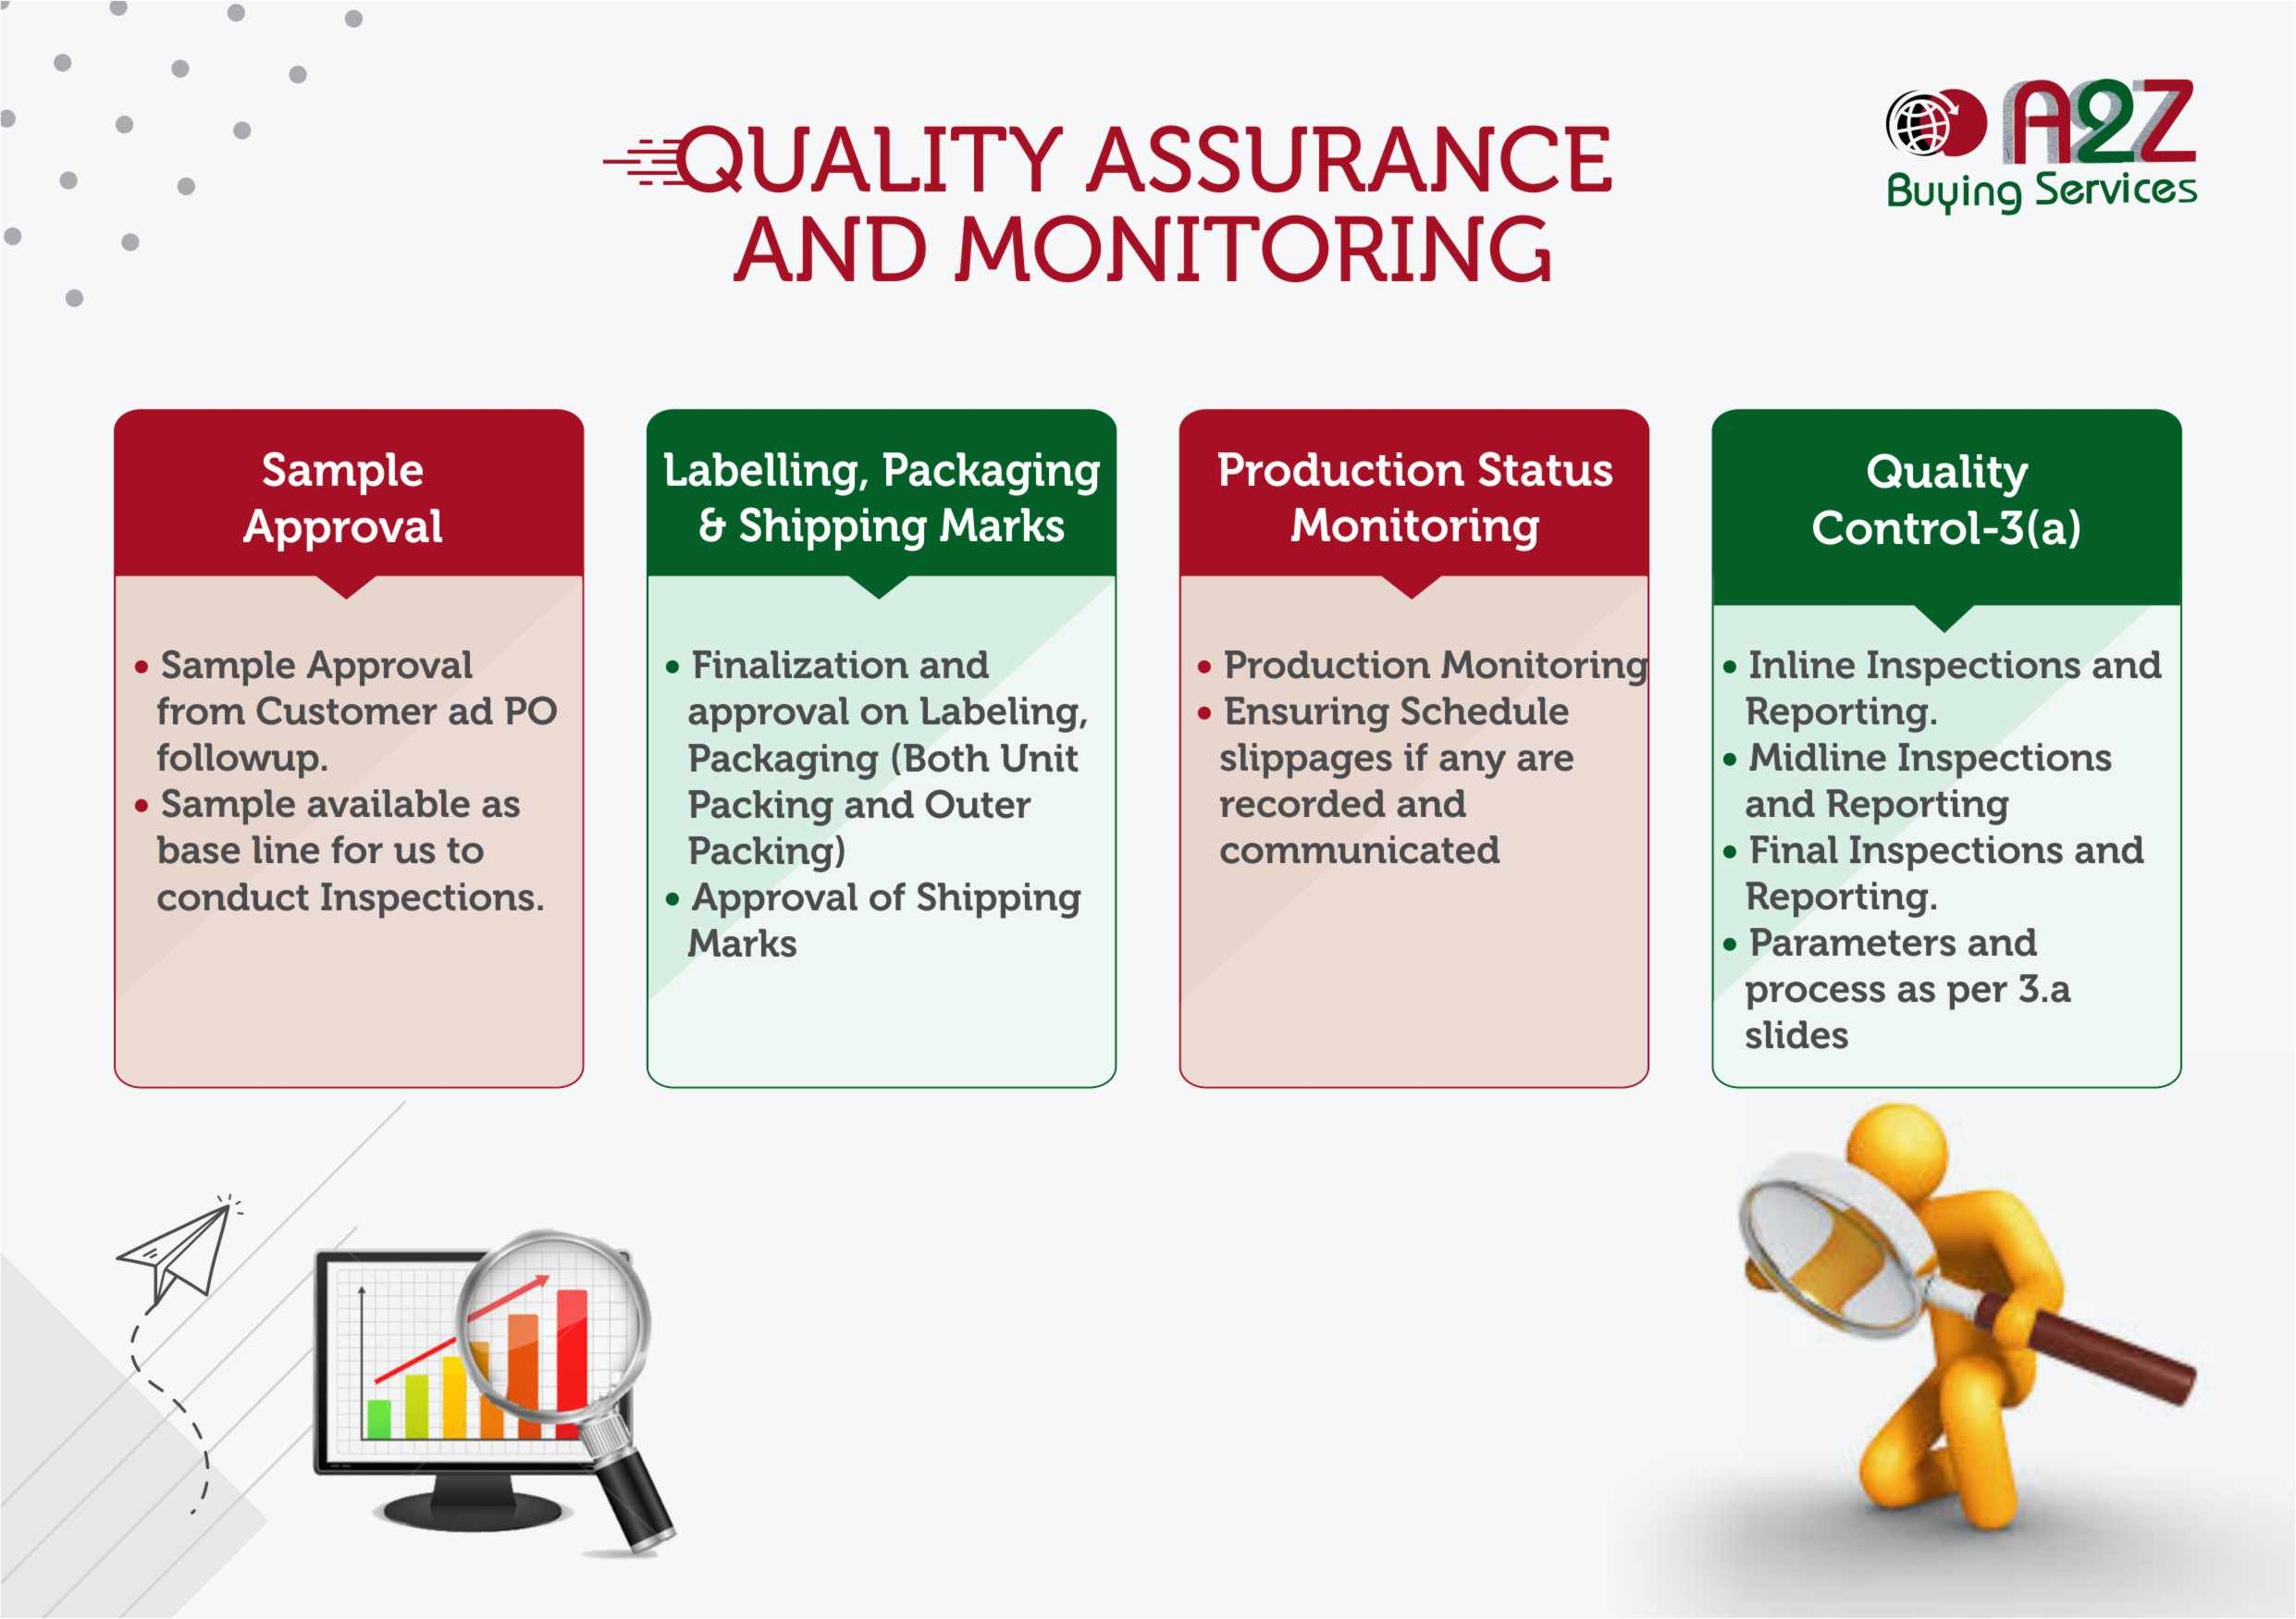 Quality Assurance Services in India